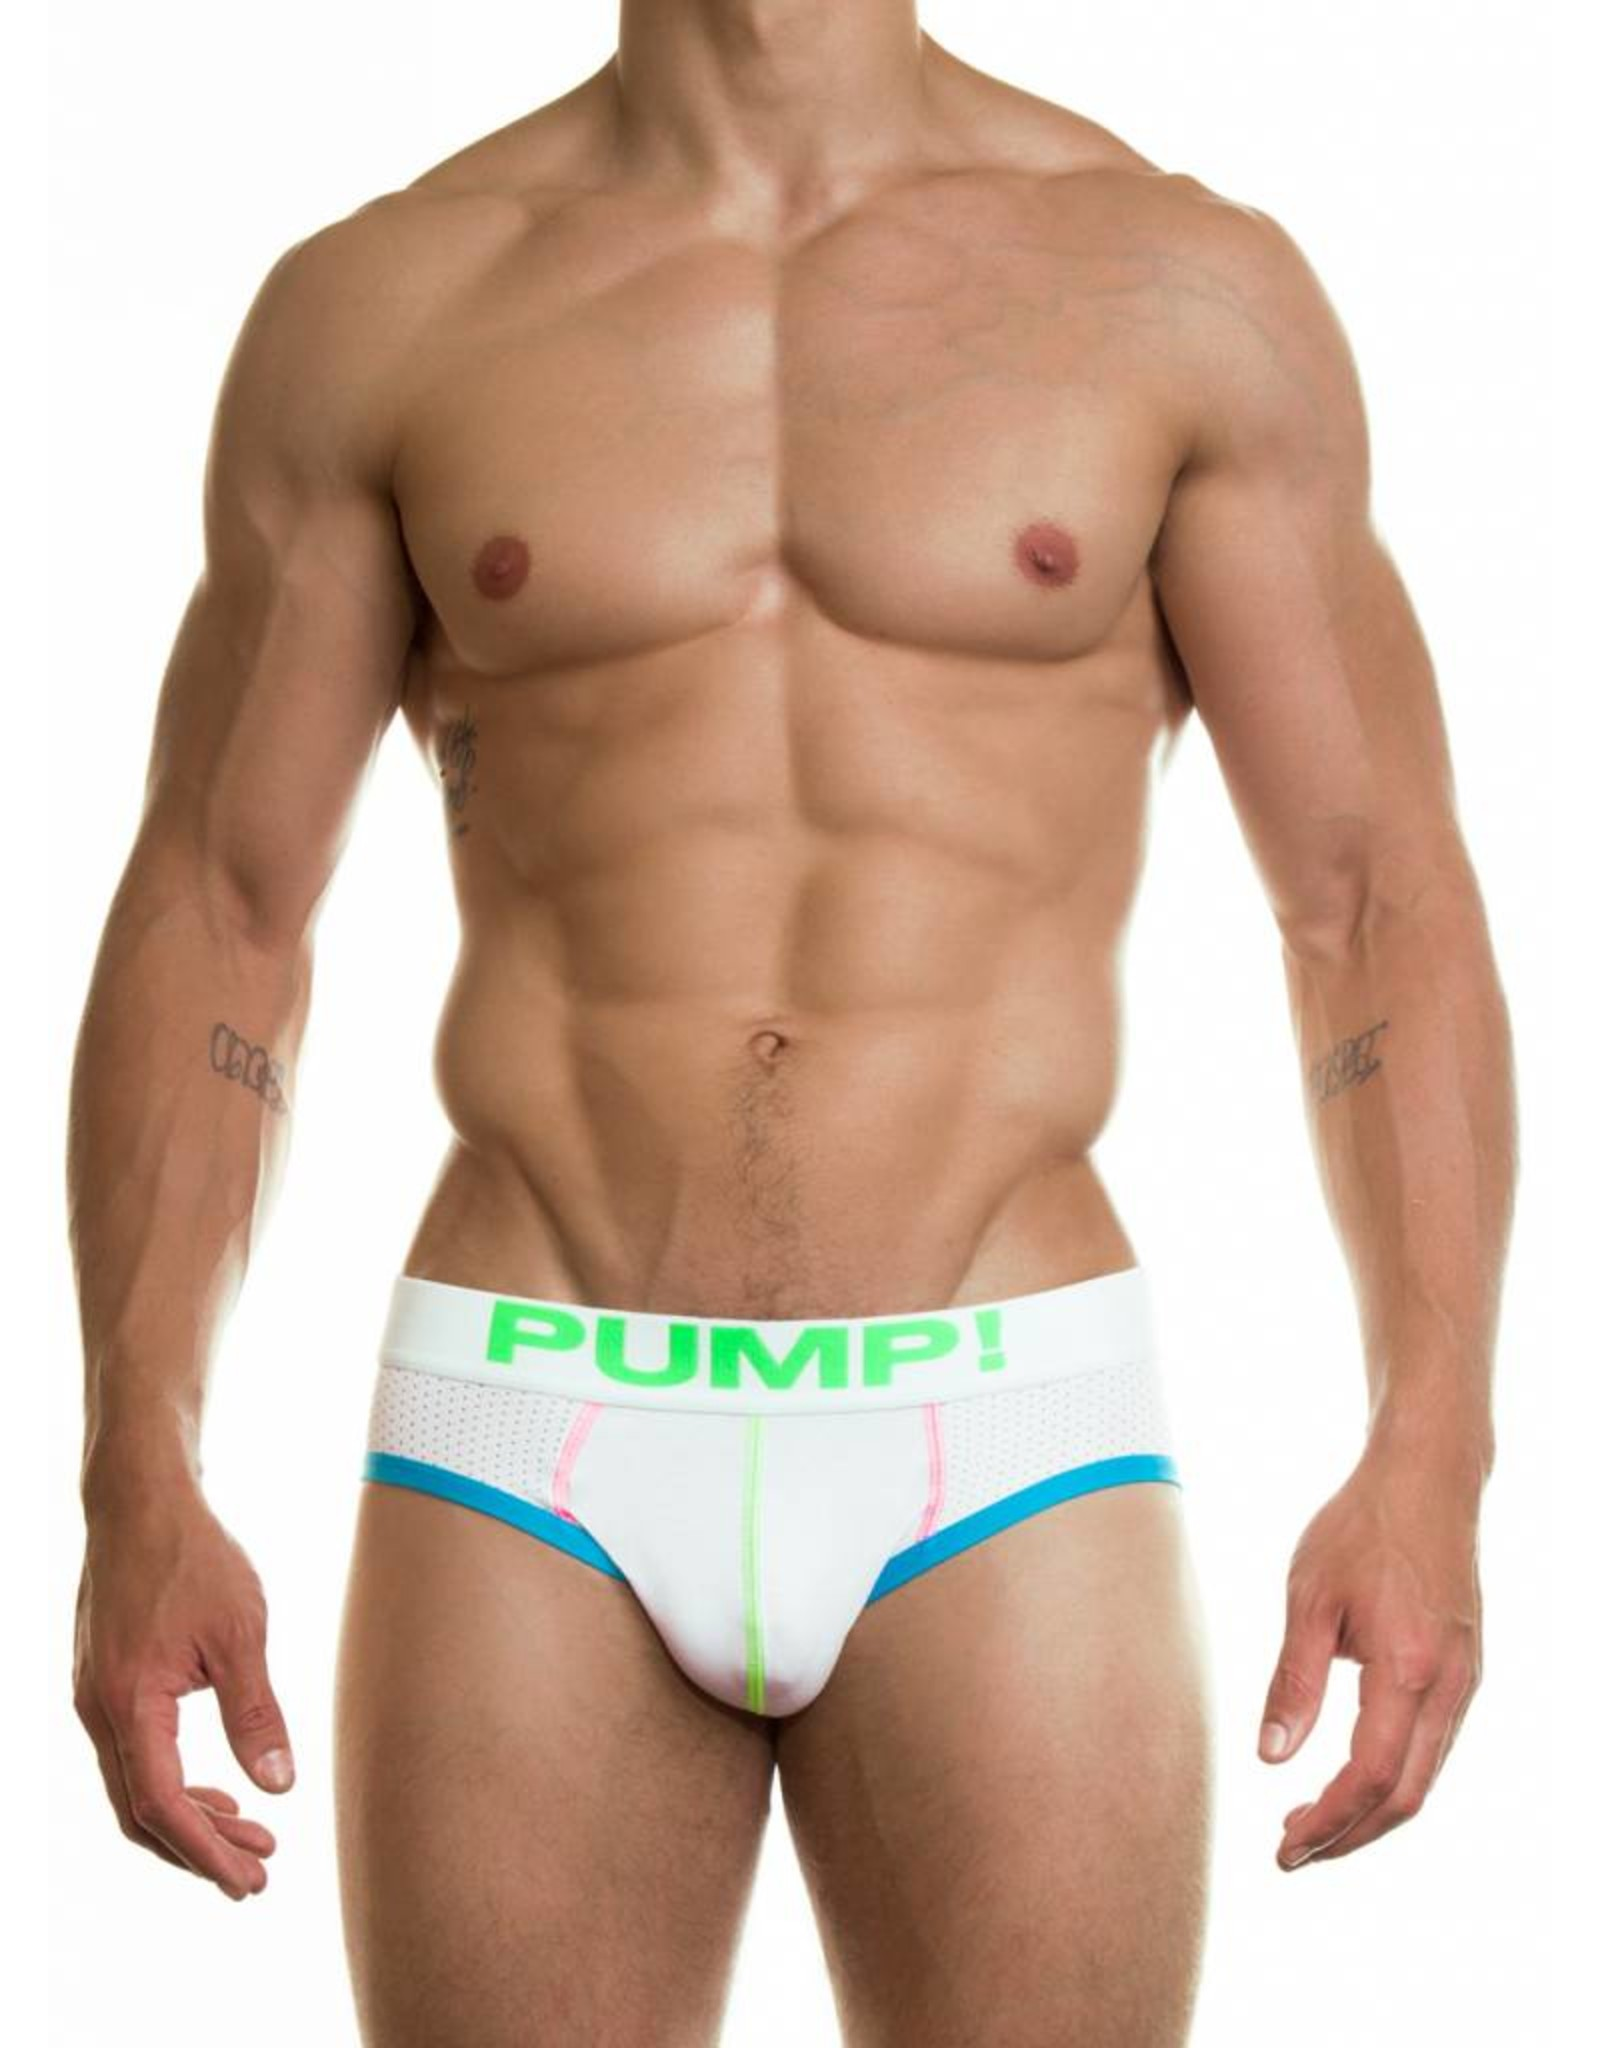 PUMP! PUMP! Candy Brief